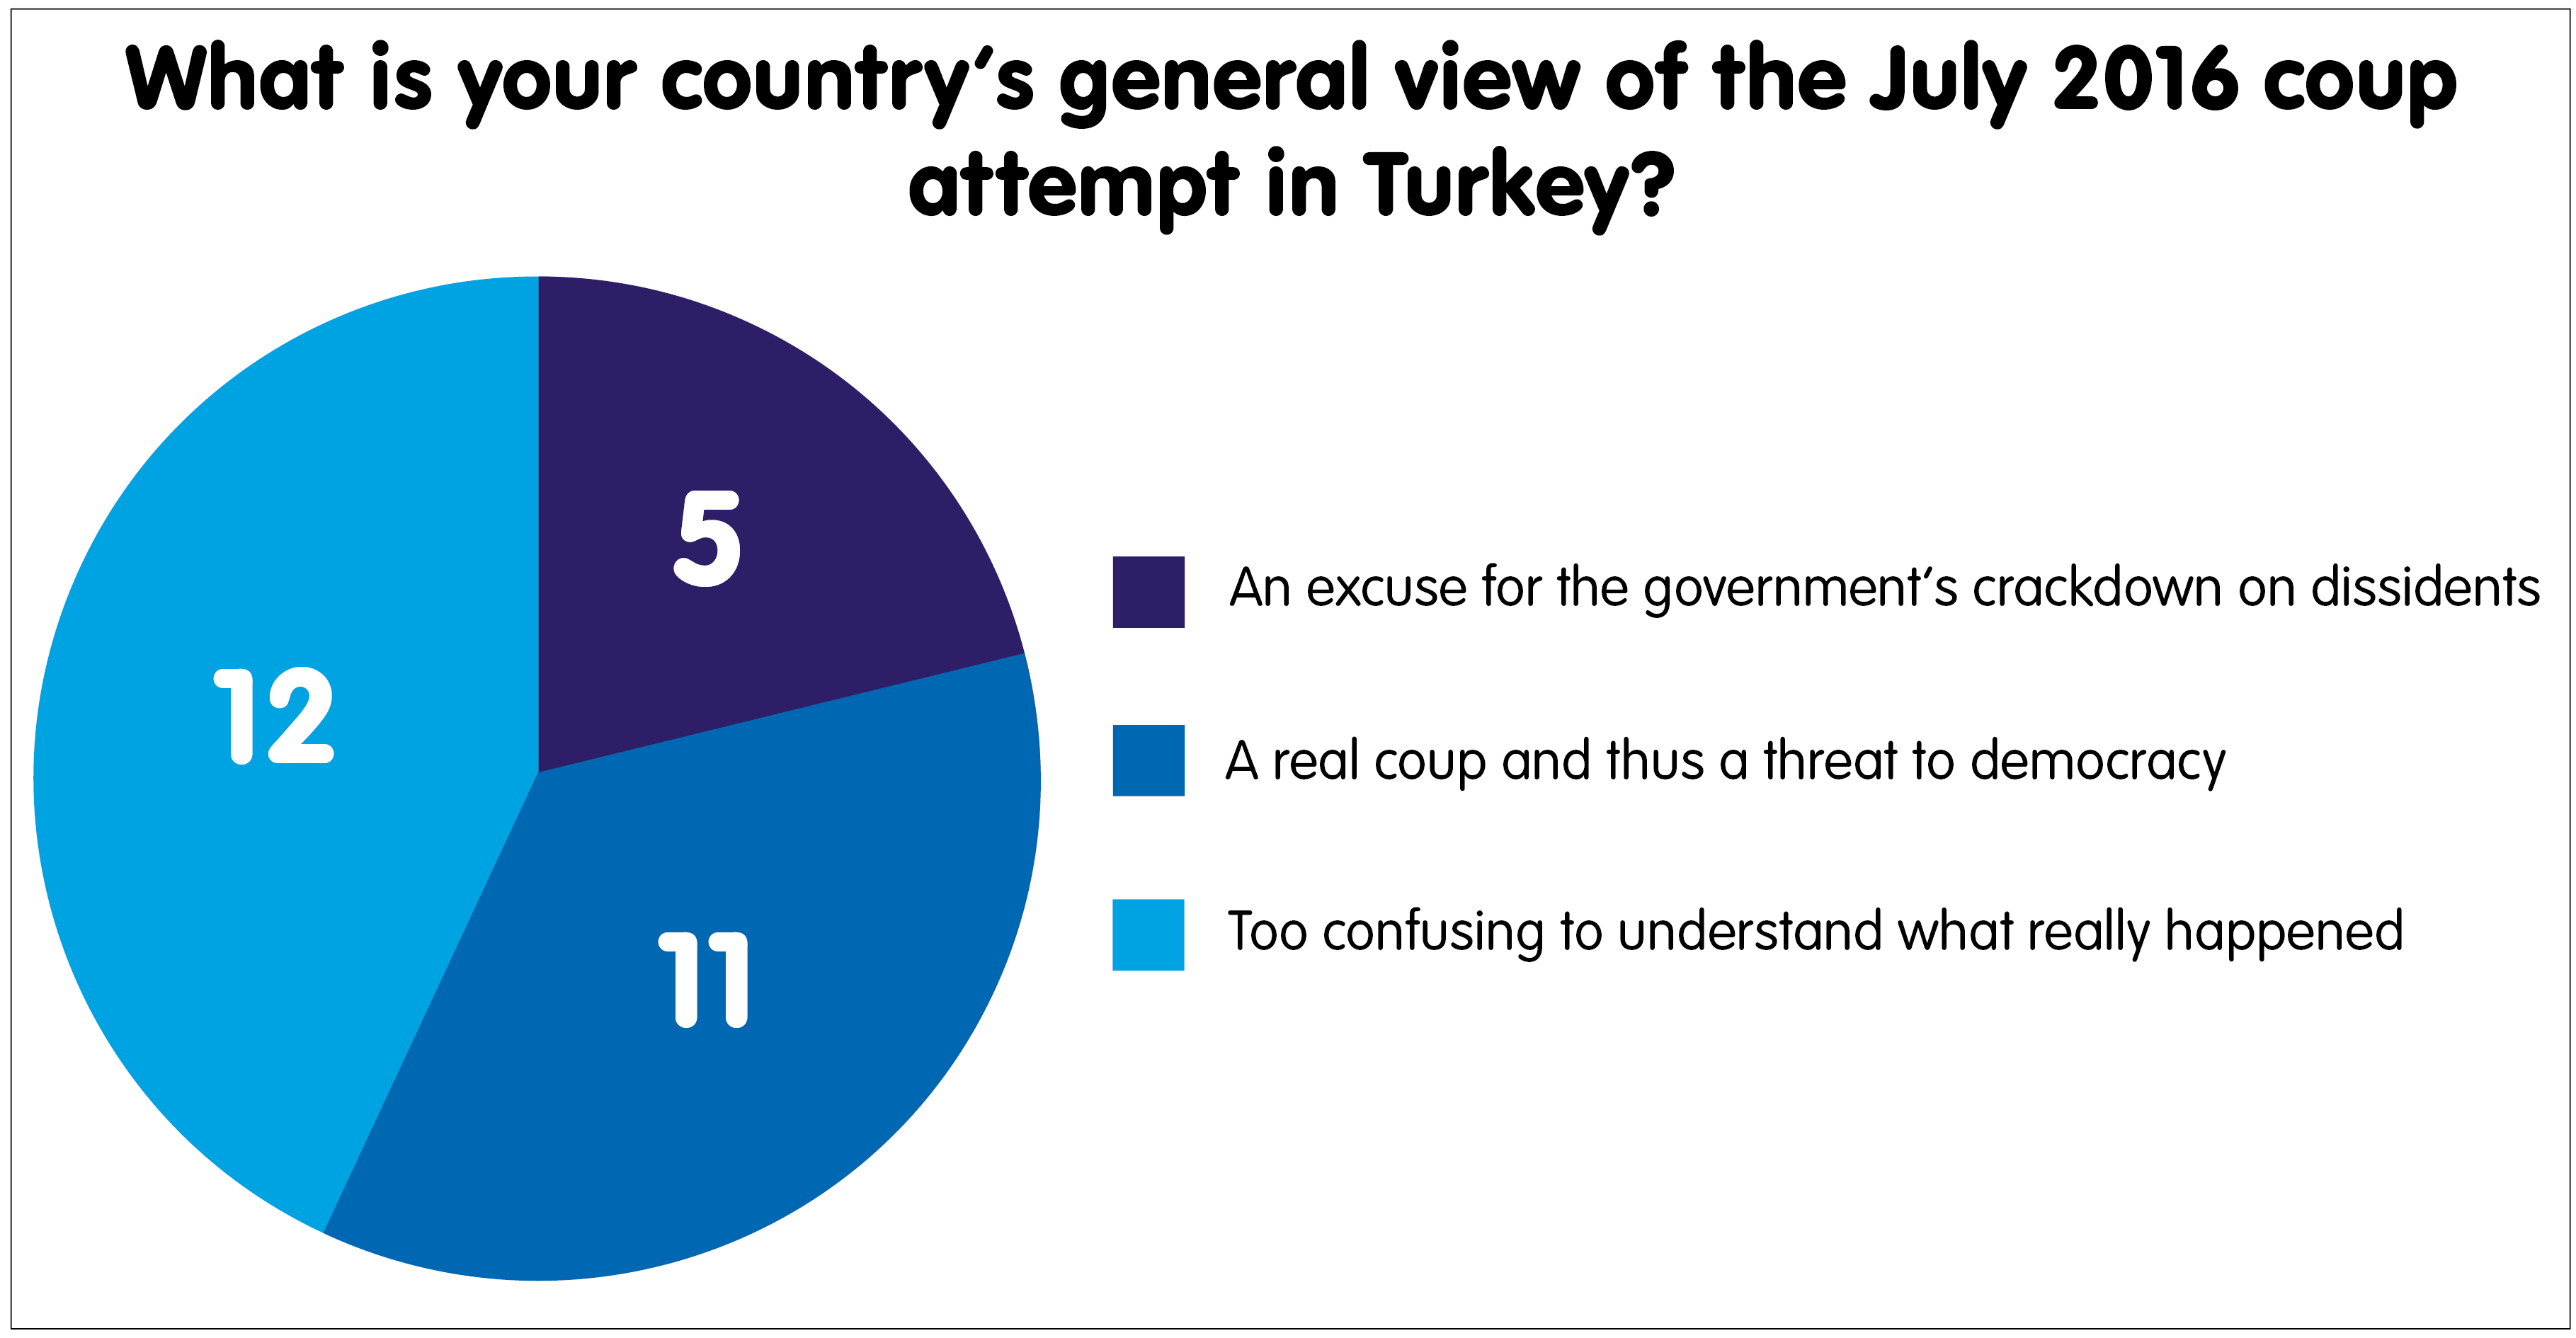 EU view on Turkey's coup attempt